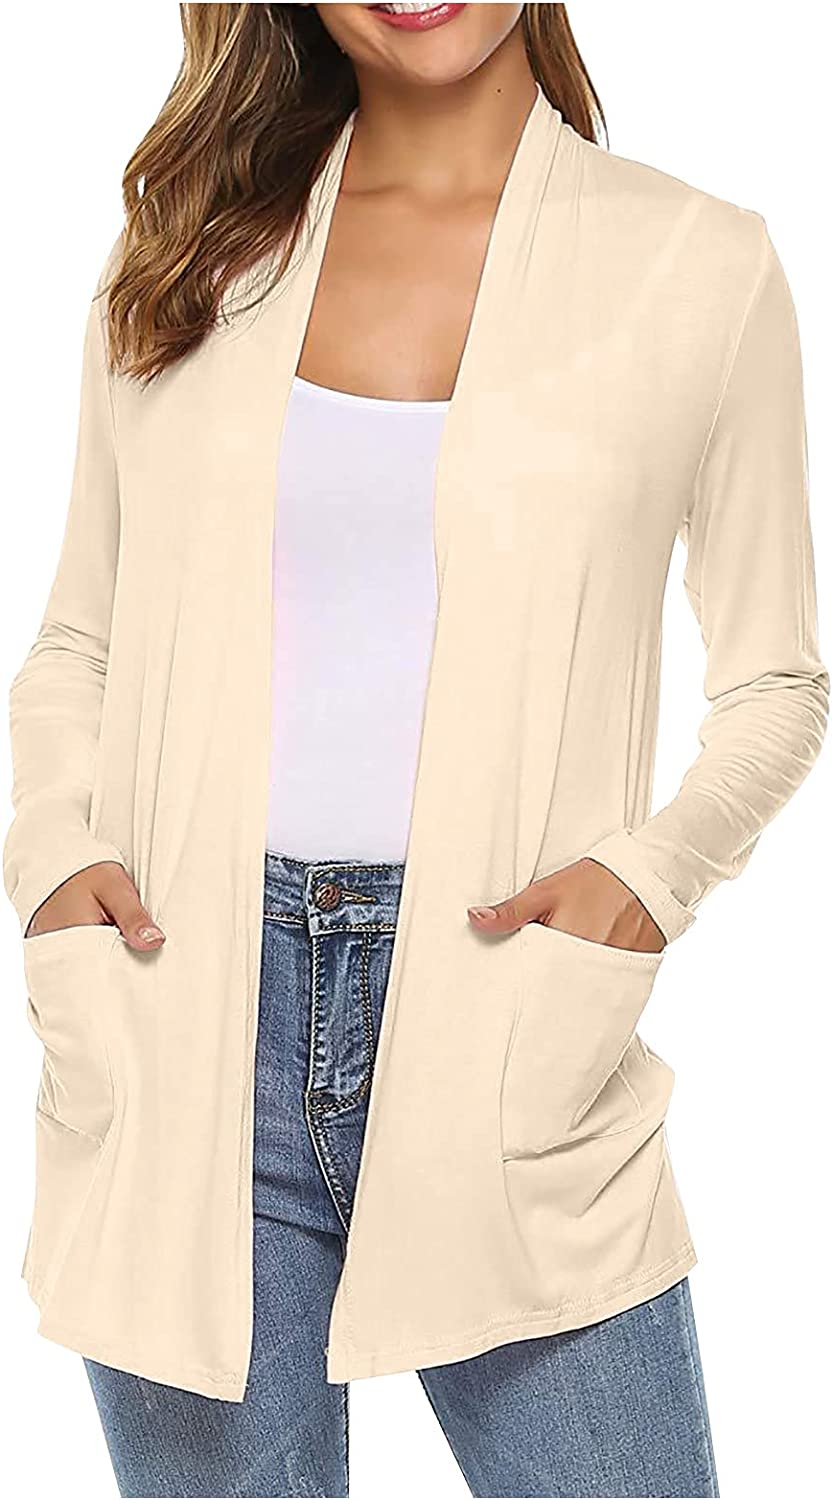 Knitted Pocket Cardigan Women's Fasion Casual Loose Solid Color Long-sleeved Top